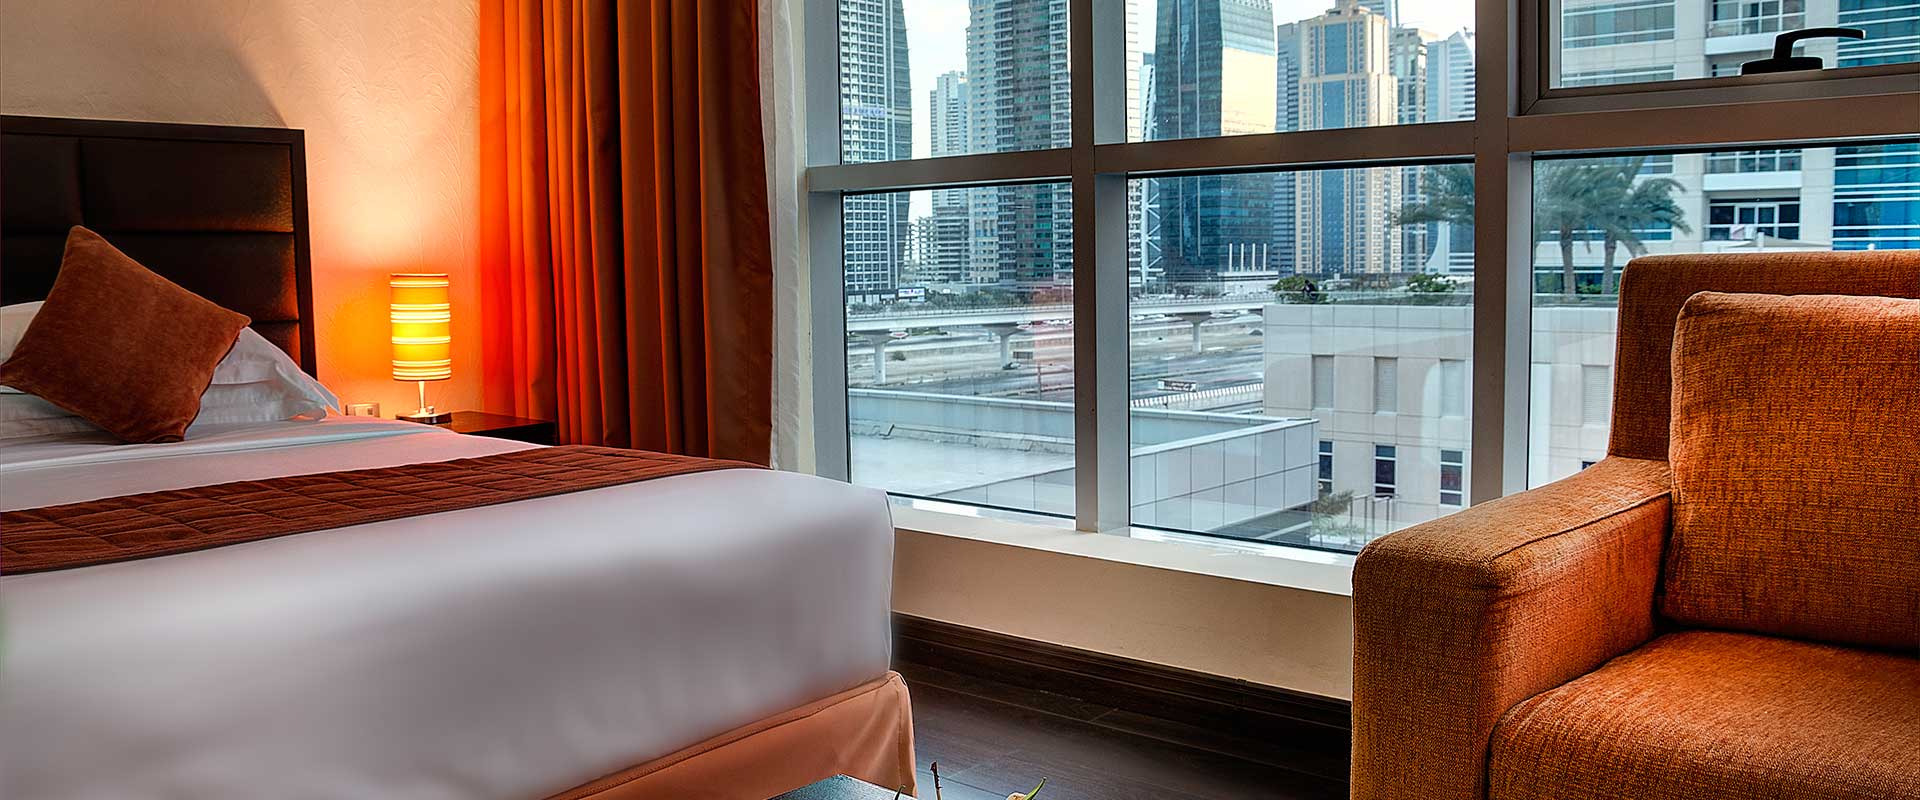 Hotel apartments for longterm rent in dubai marina for Best suites in dubai